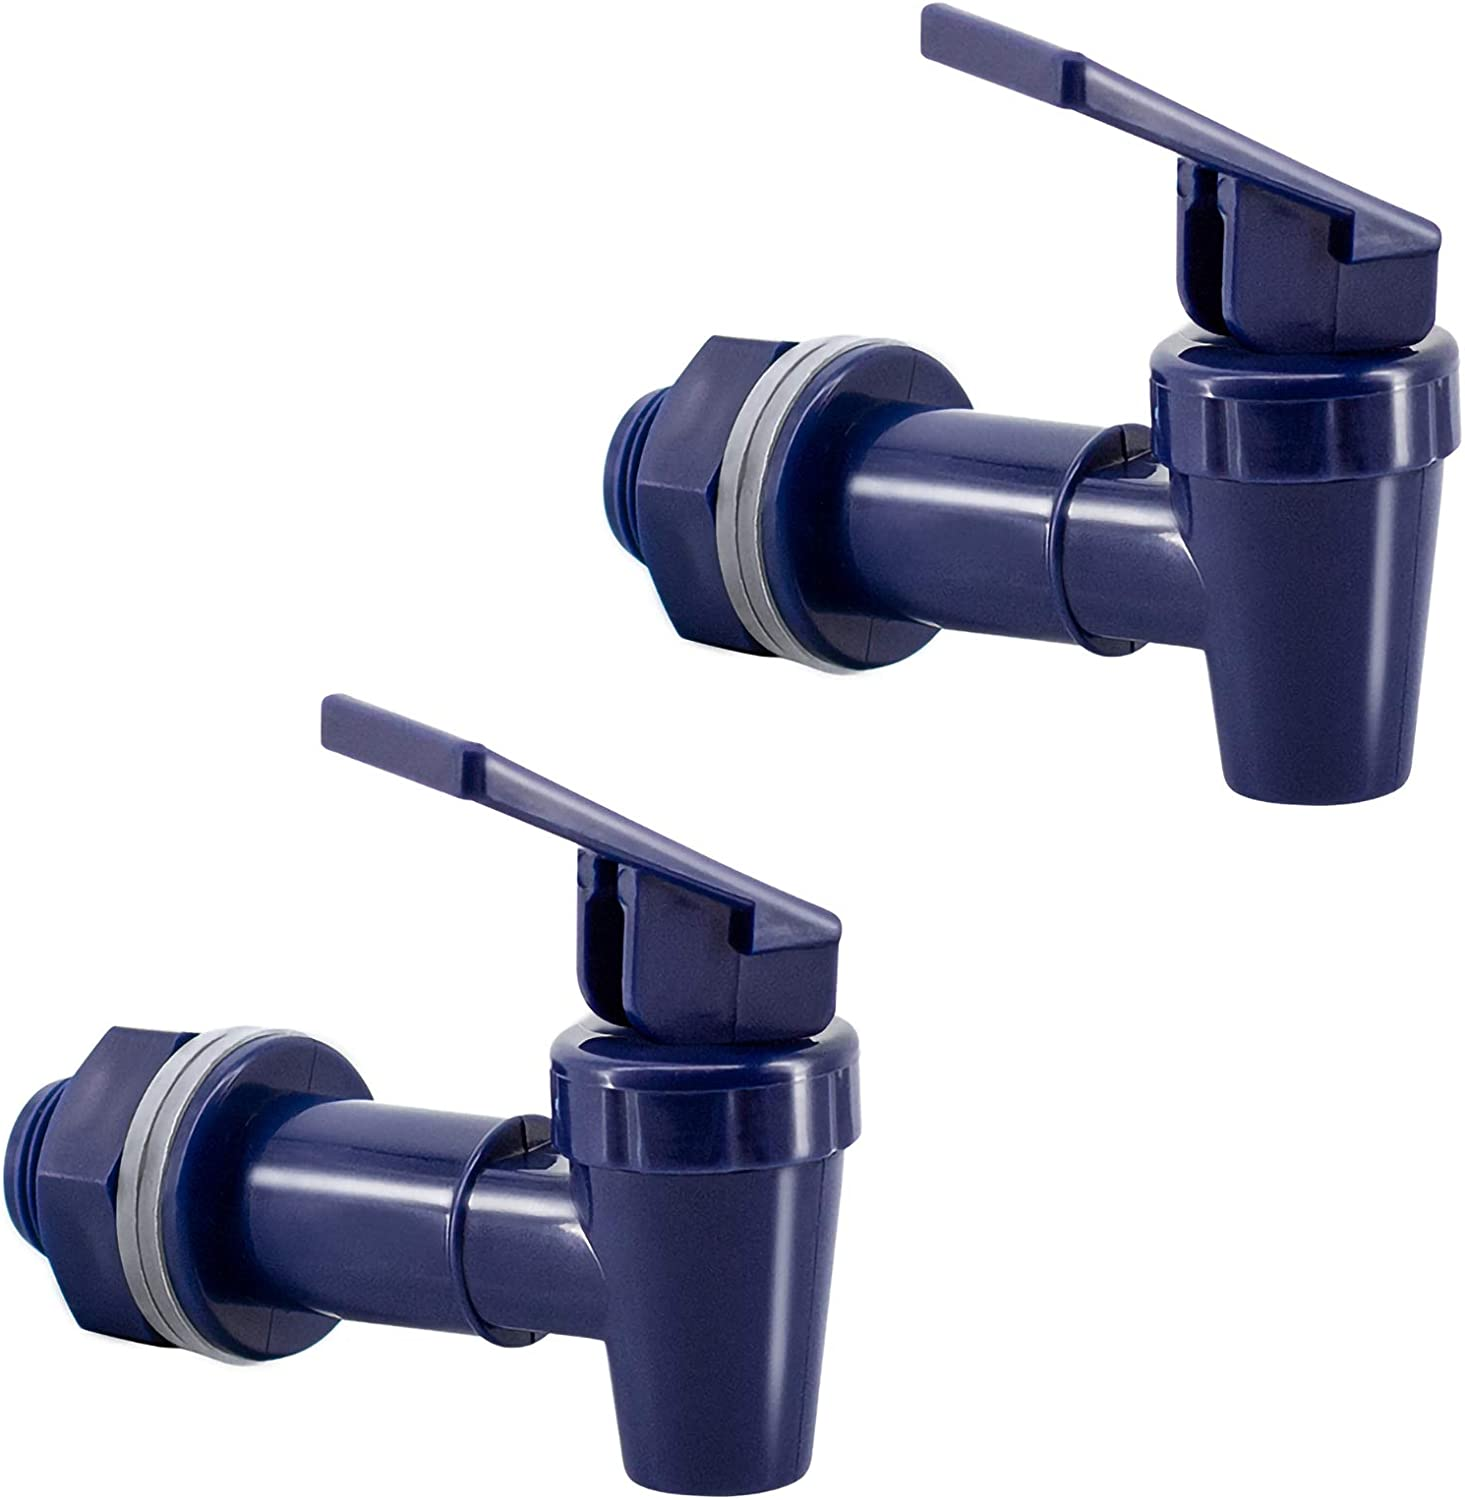 hgzaccompany BPA-free replacement faucet for cooler, replacement spigot for cooler, plastic spigot for water dispenser. (2, blue)